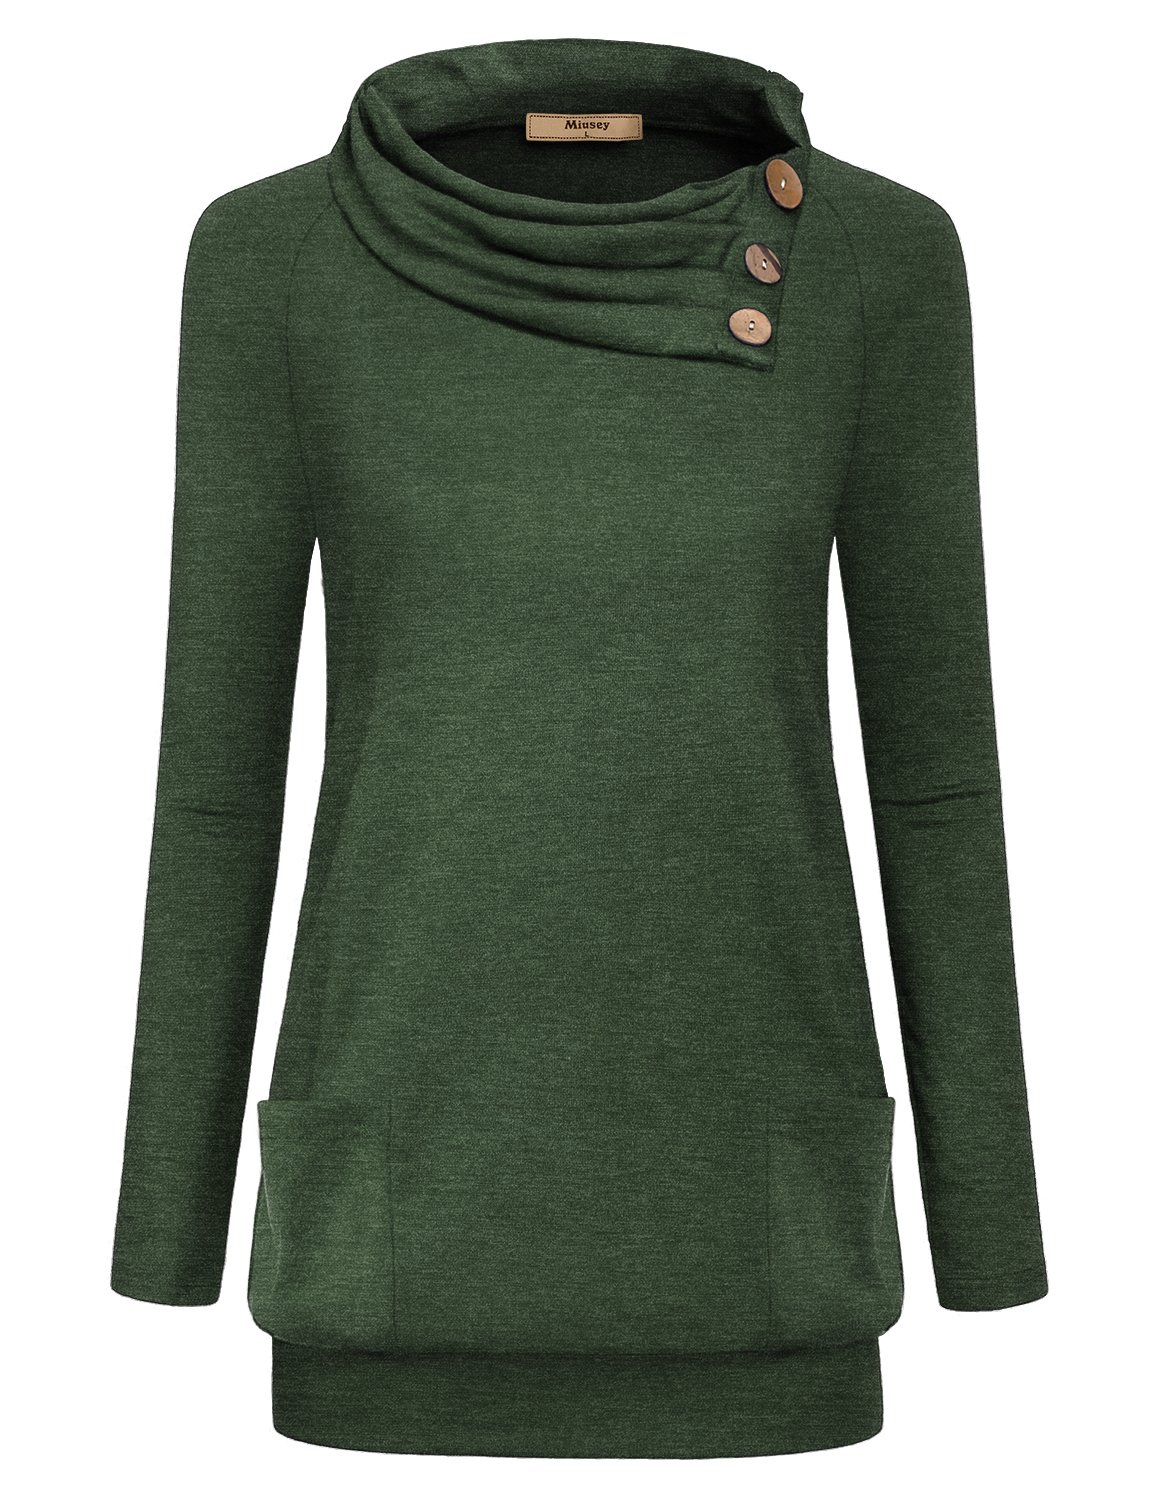 Miusey Business Casual Clothes for Women,Long Sleeve Tops Pullover Lightweight Sweatshirt with Utility Pocket Banded Bottom Shirt Workout Sporty Chic Top Fall Clothing Green S